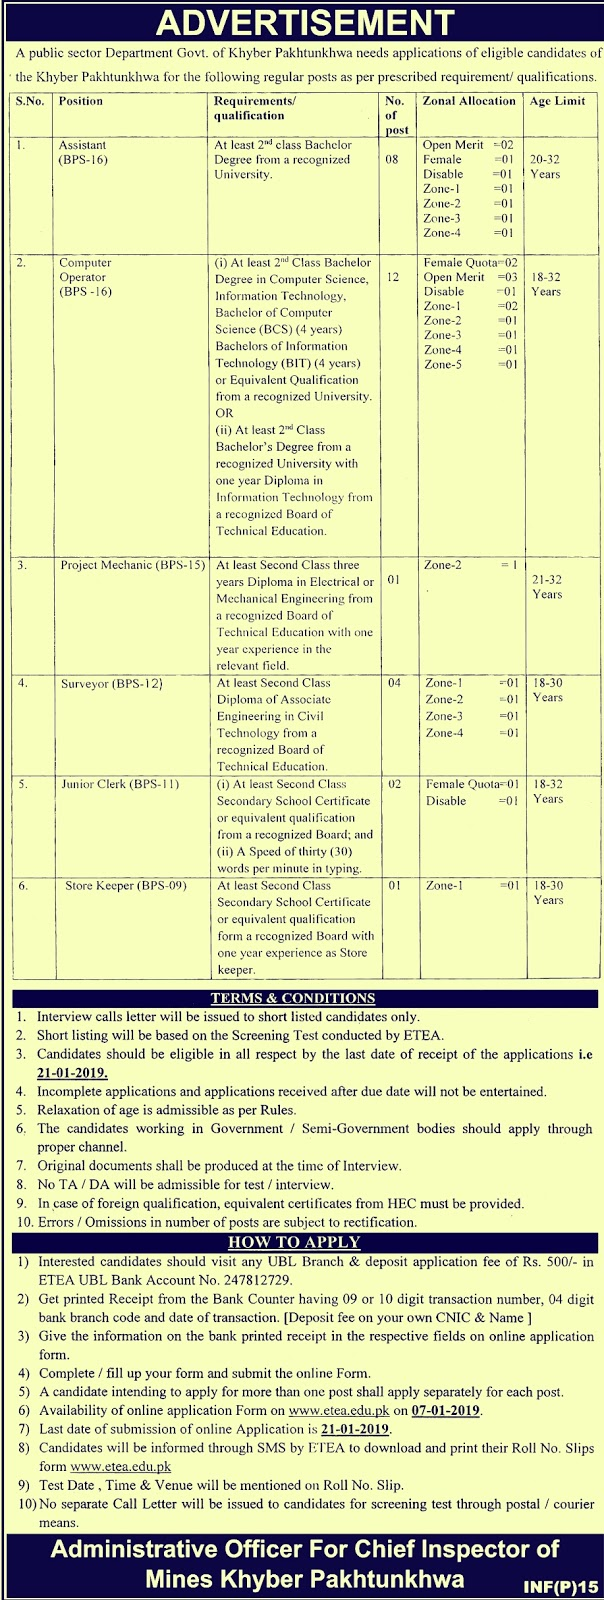 Mines And Minerals Department KPK Jobs 2019 - Latest